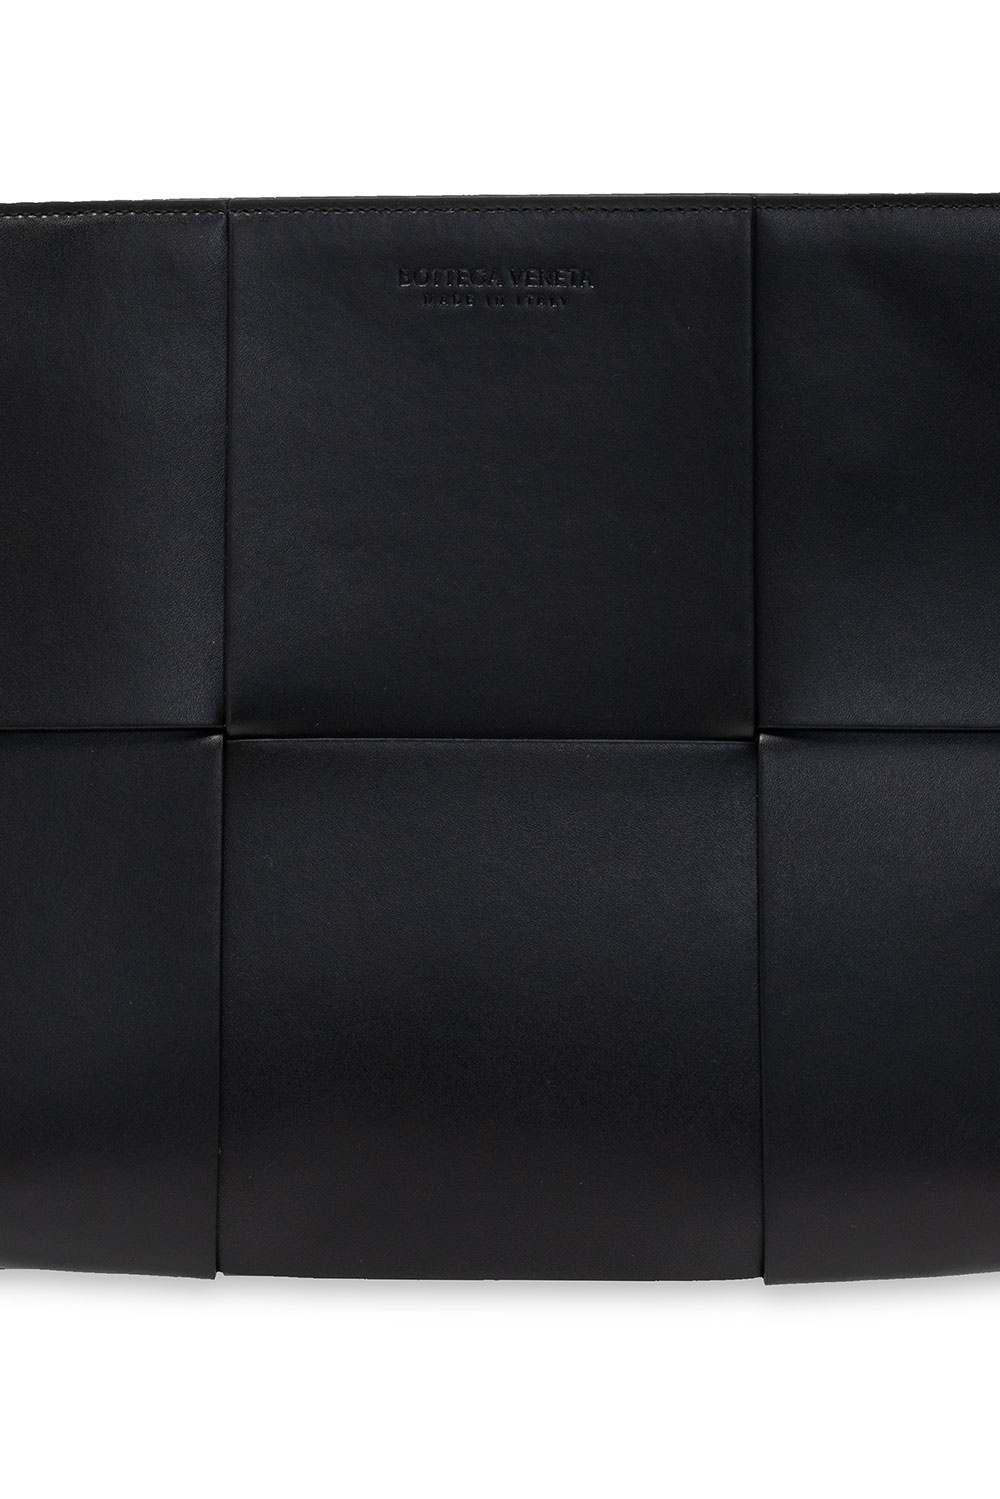 Bottega Veneta 'Intrecciato' weave document case